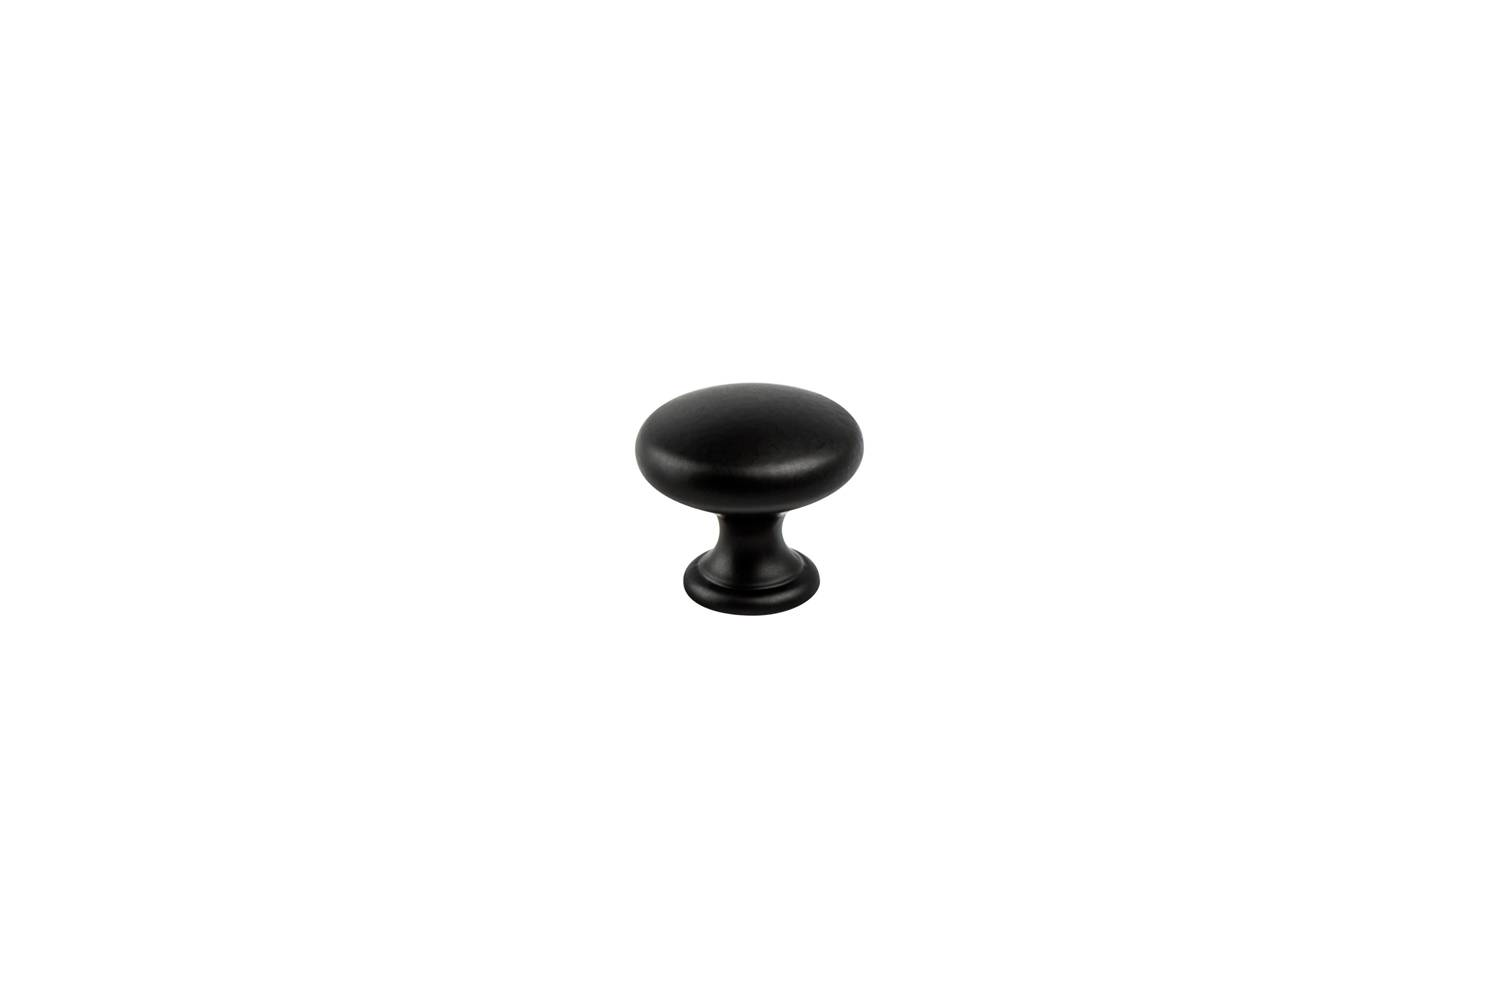 The Berenson Hardware Black Cabinet Knobs are $